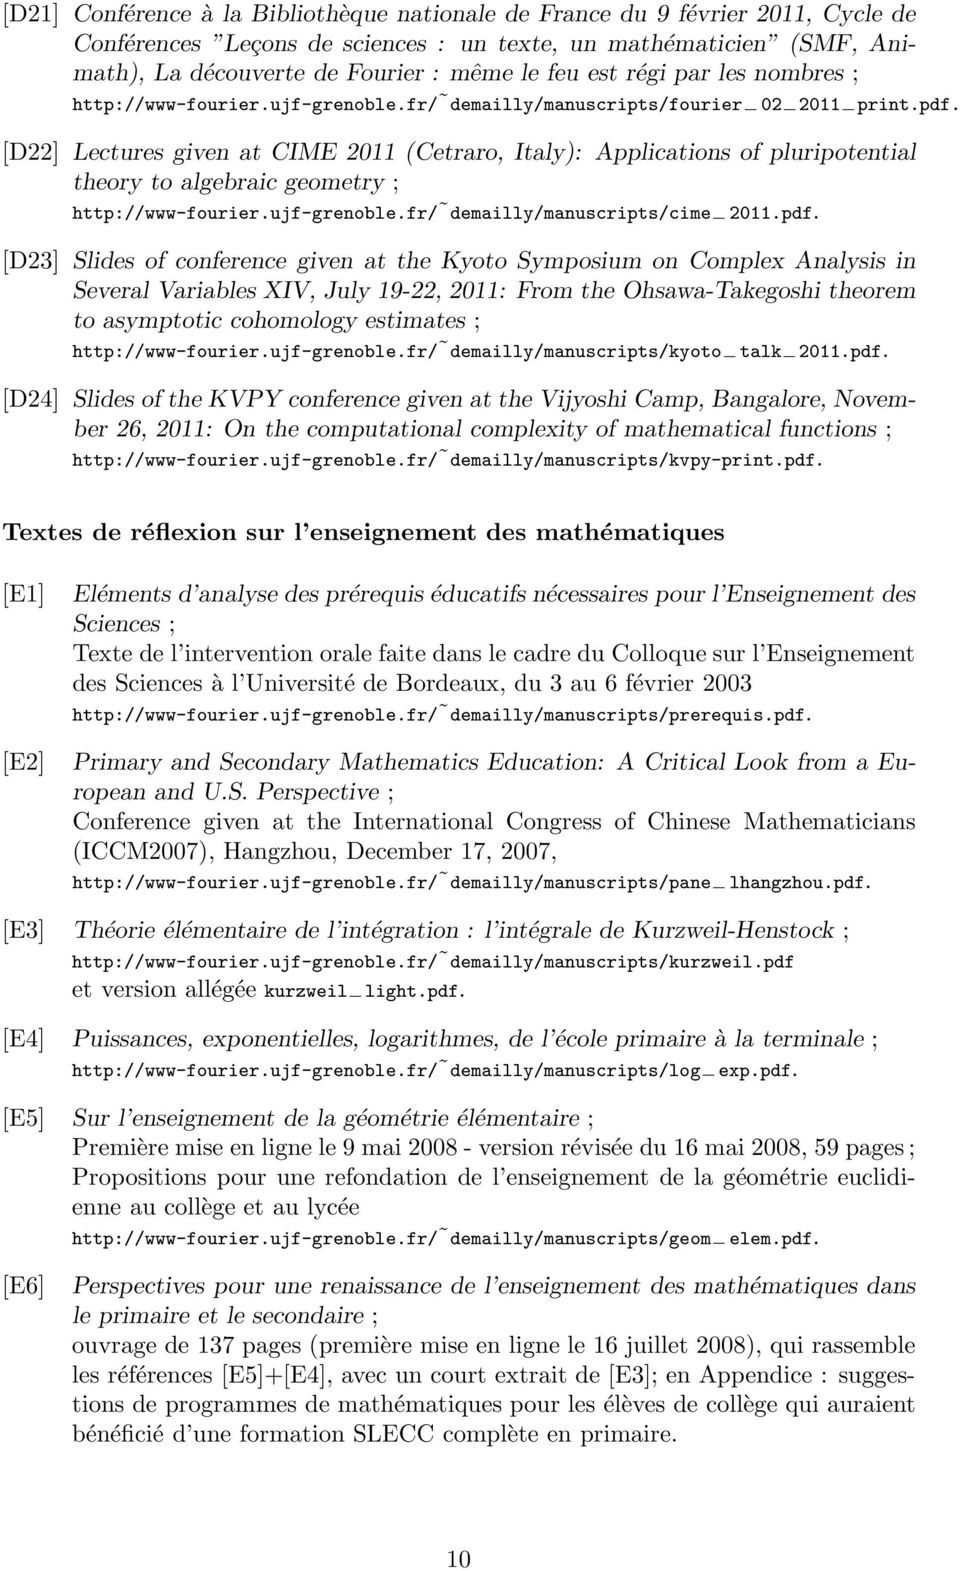 [D22] Lectures given at CIME 2011 (Cetraro, Italy): Applications of pluripotential theory to algebraic geometry ; http://www-fourier.ujf-grenoble.fr/ demailly/manuscripts/cime 2011.pdf.